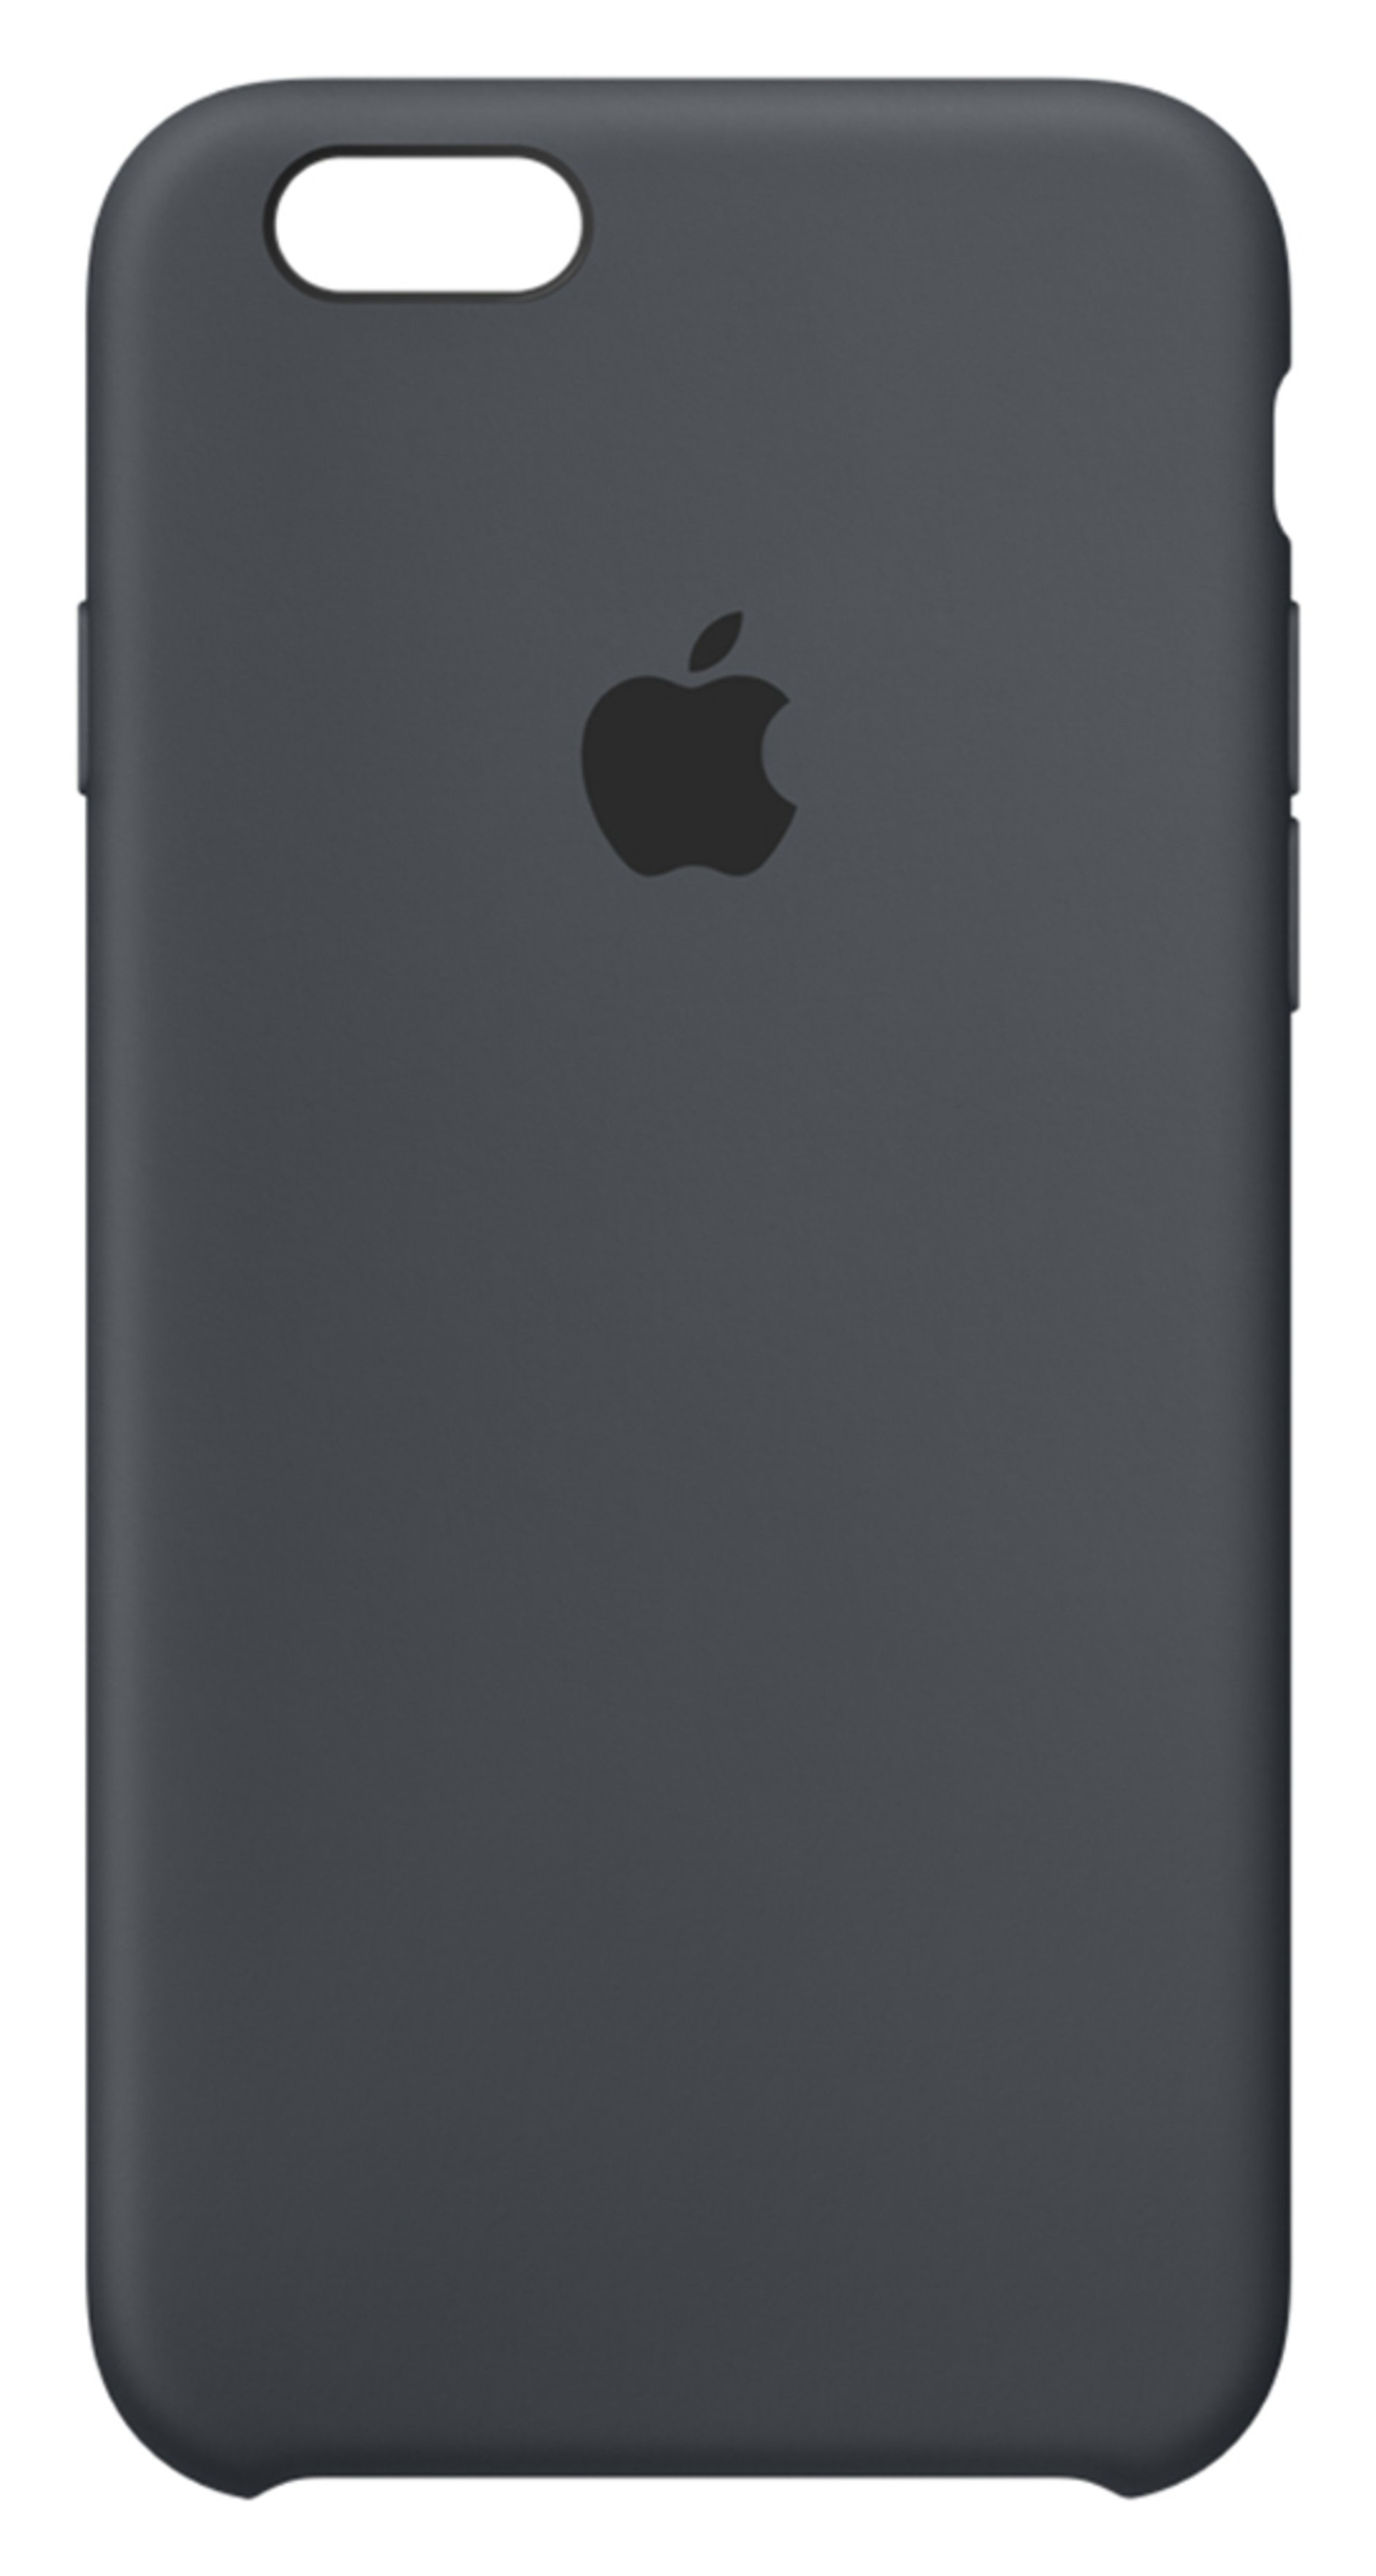 Apple iPhone 6 / 6s Silicone Case - Charcoal Grey cheapest retail price